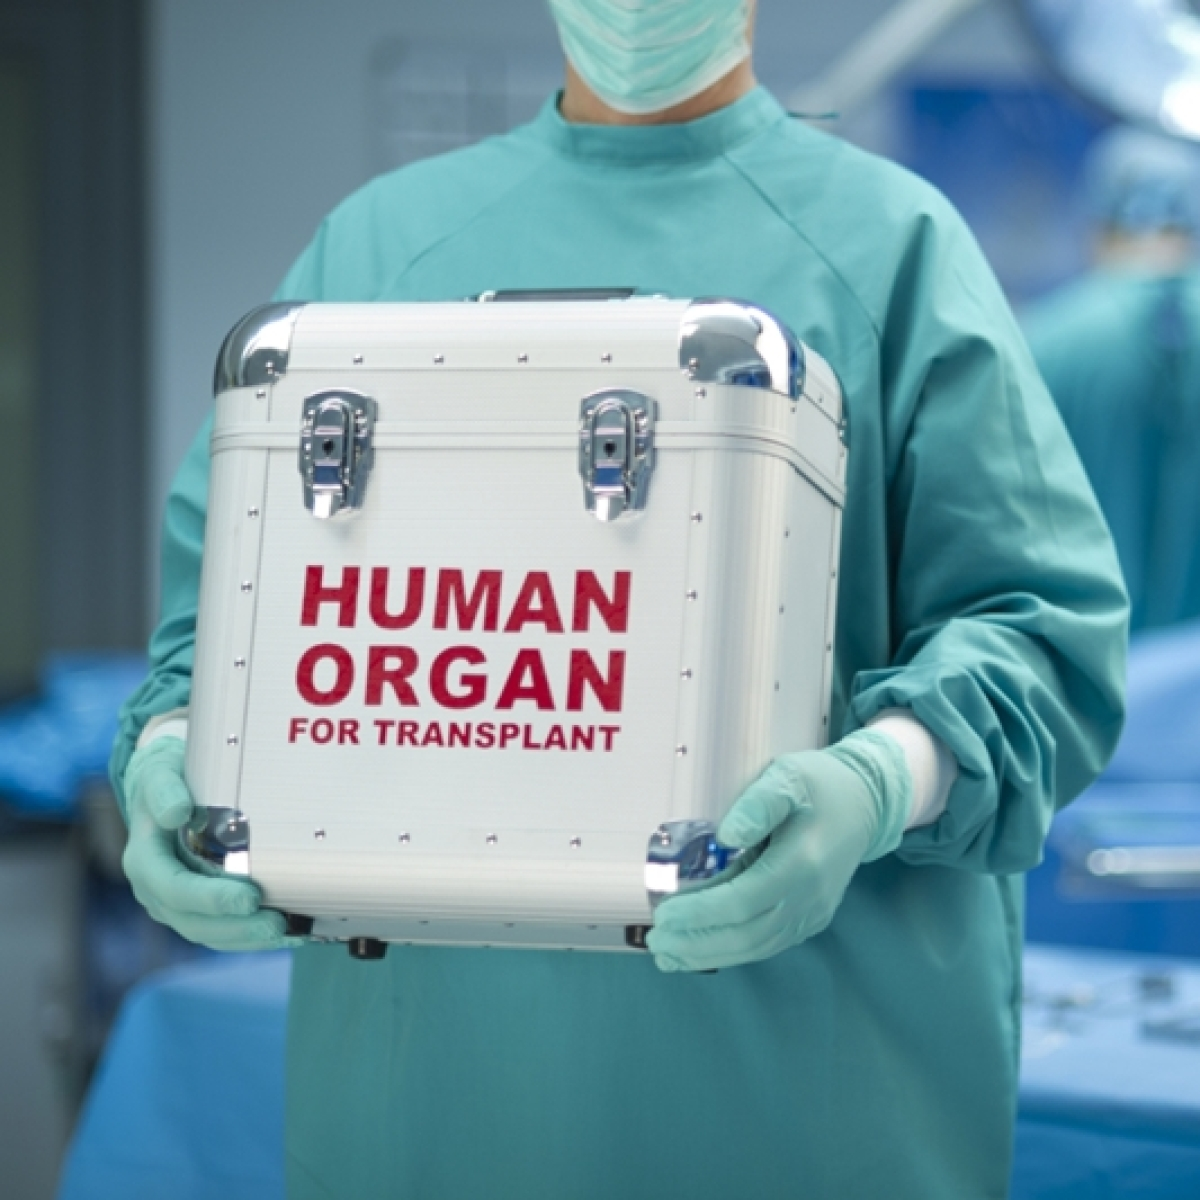 CRPF to launch organ donation drive on Aug 14